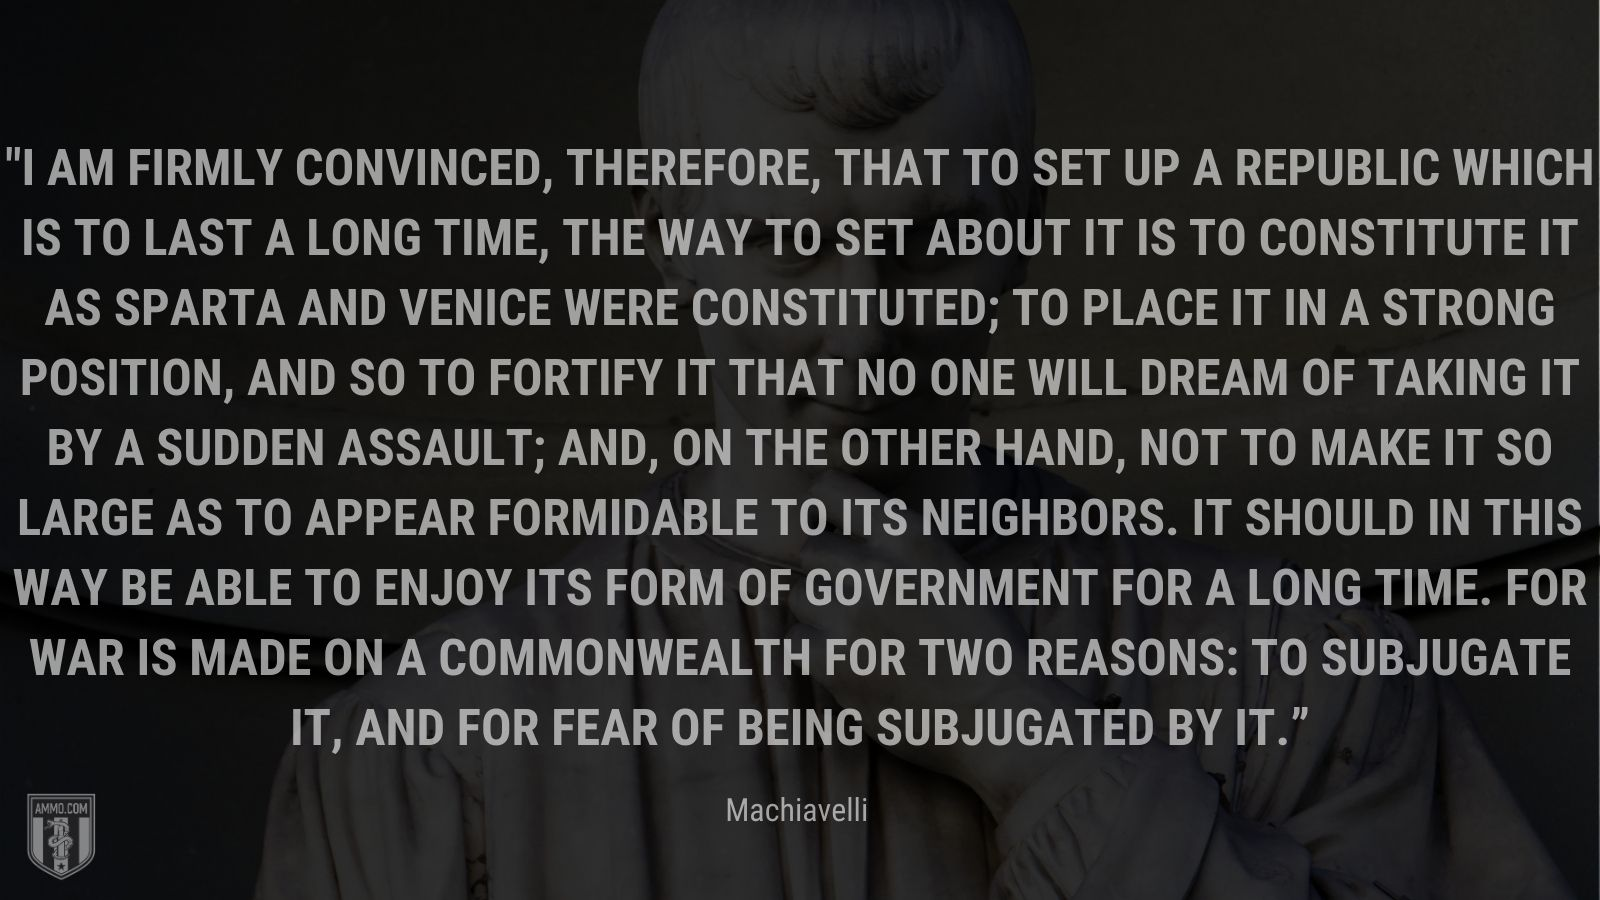 """""""I am firmly convinced, therefore, that to set up a republic which is to last a long time, the way to set about it is to constitute it as Sparta and Venice were constituted; to place it in a strong position, and so to fortify it that no one will dream of taking it by a sudden assault; and, on the other hand, not to make it so large as to appear formidable to its neighbors. It should in this way be able to enjoy its form of government for a long time. For war is made on a commonwealth for two reasons: to subjugate it, and for fear of being subjugated by it."""" - Machiavelli"""